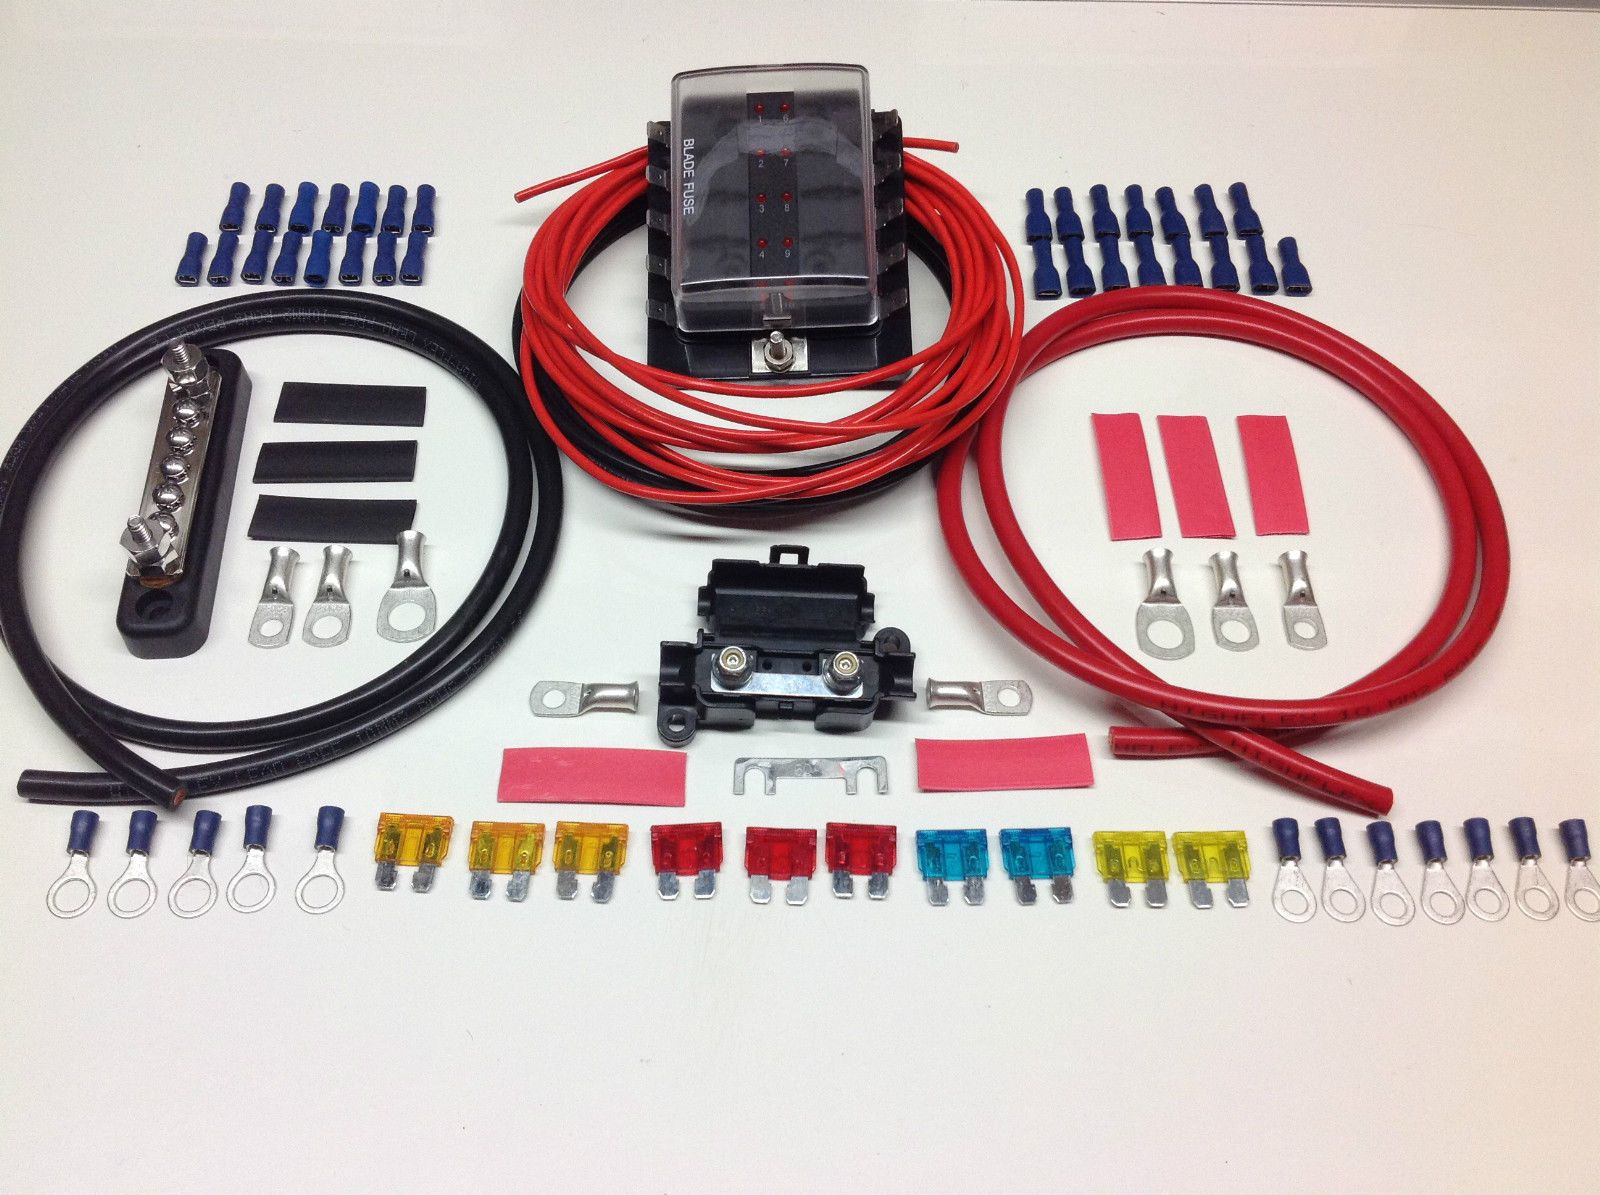 2014 Challenger Fuse Box Trusted Wiring Diagrams Cable Block And Schematic U2022 Outback